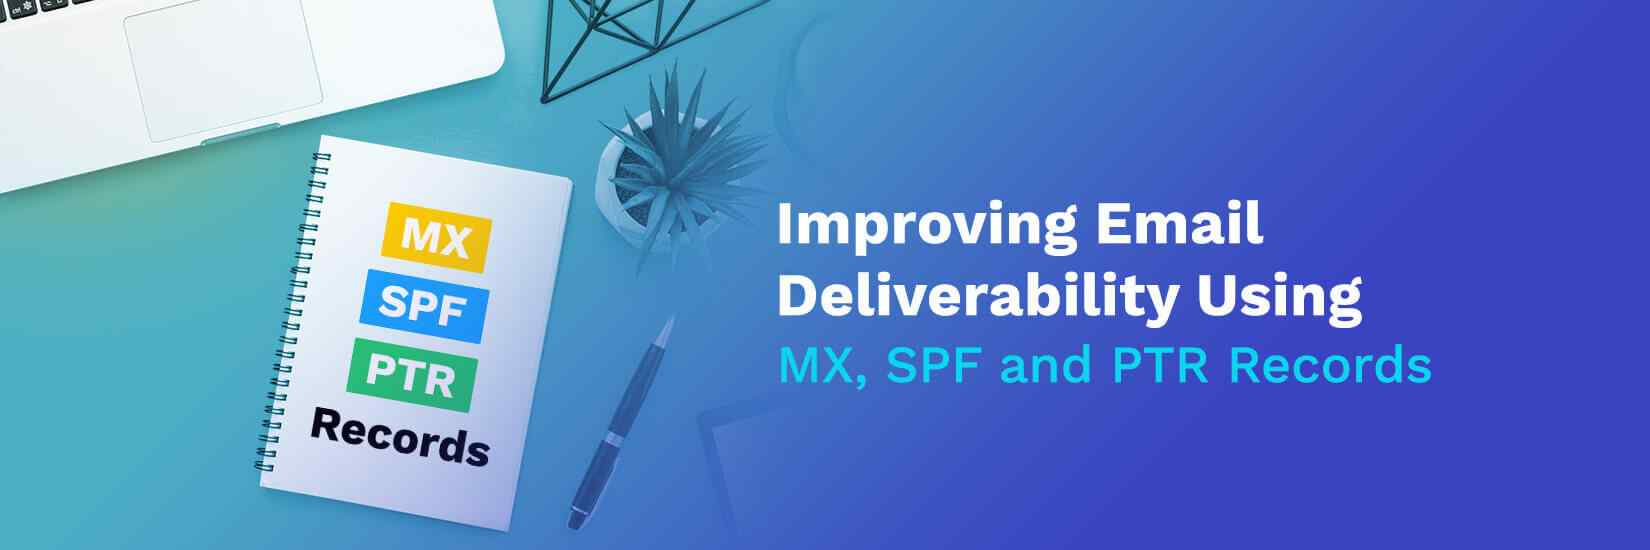 Improving Email Deliverability Using MX, SPF and PTR Records